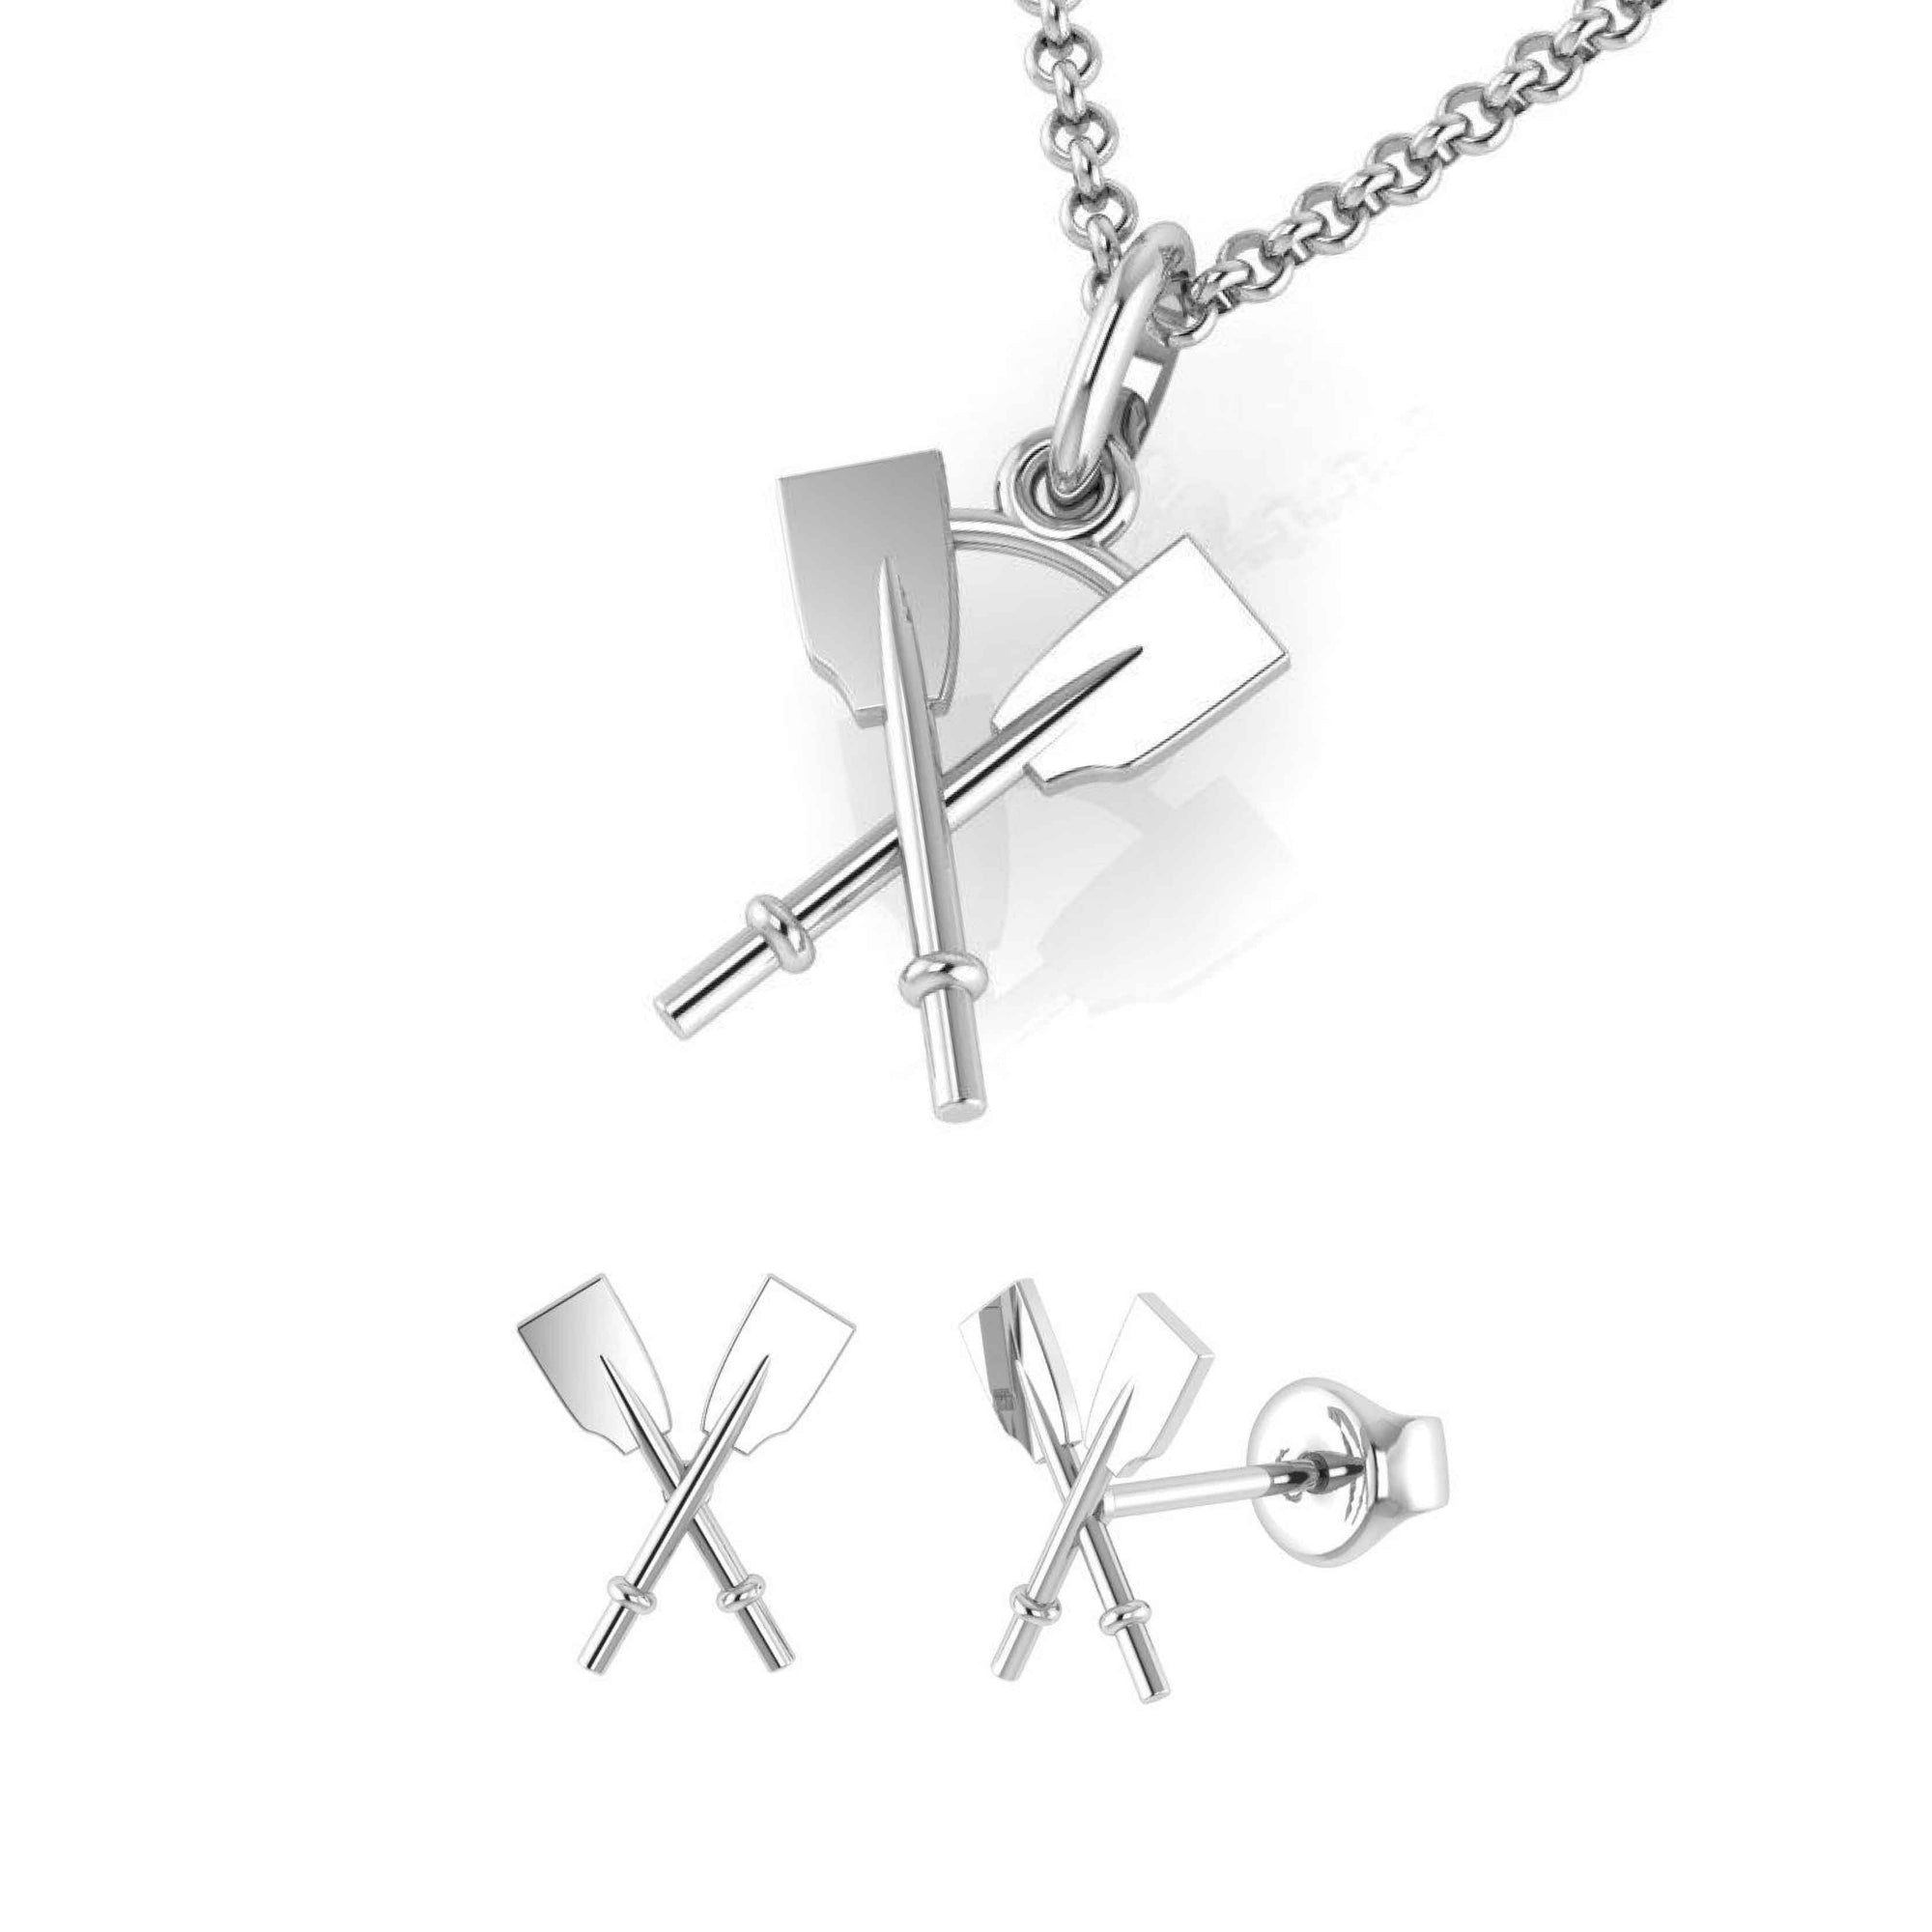 Crossed Oars Pendant and Earrings